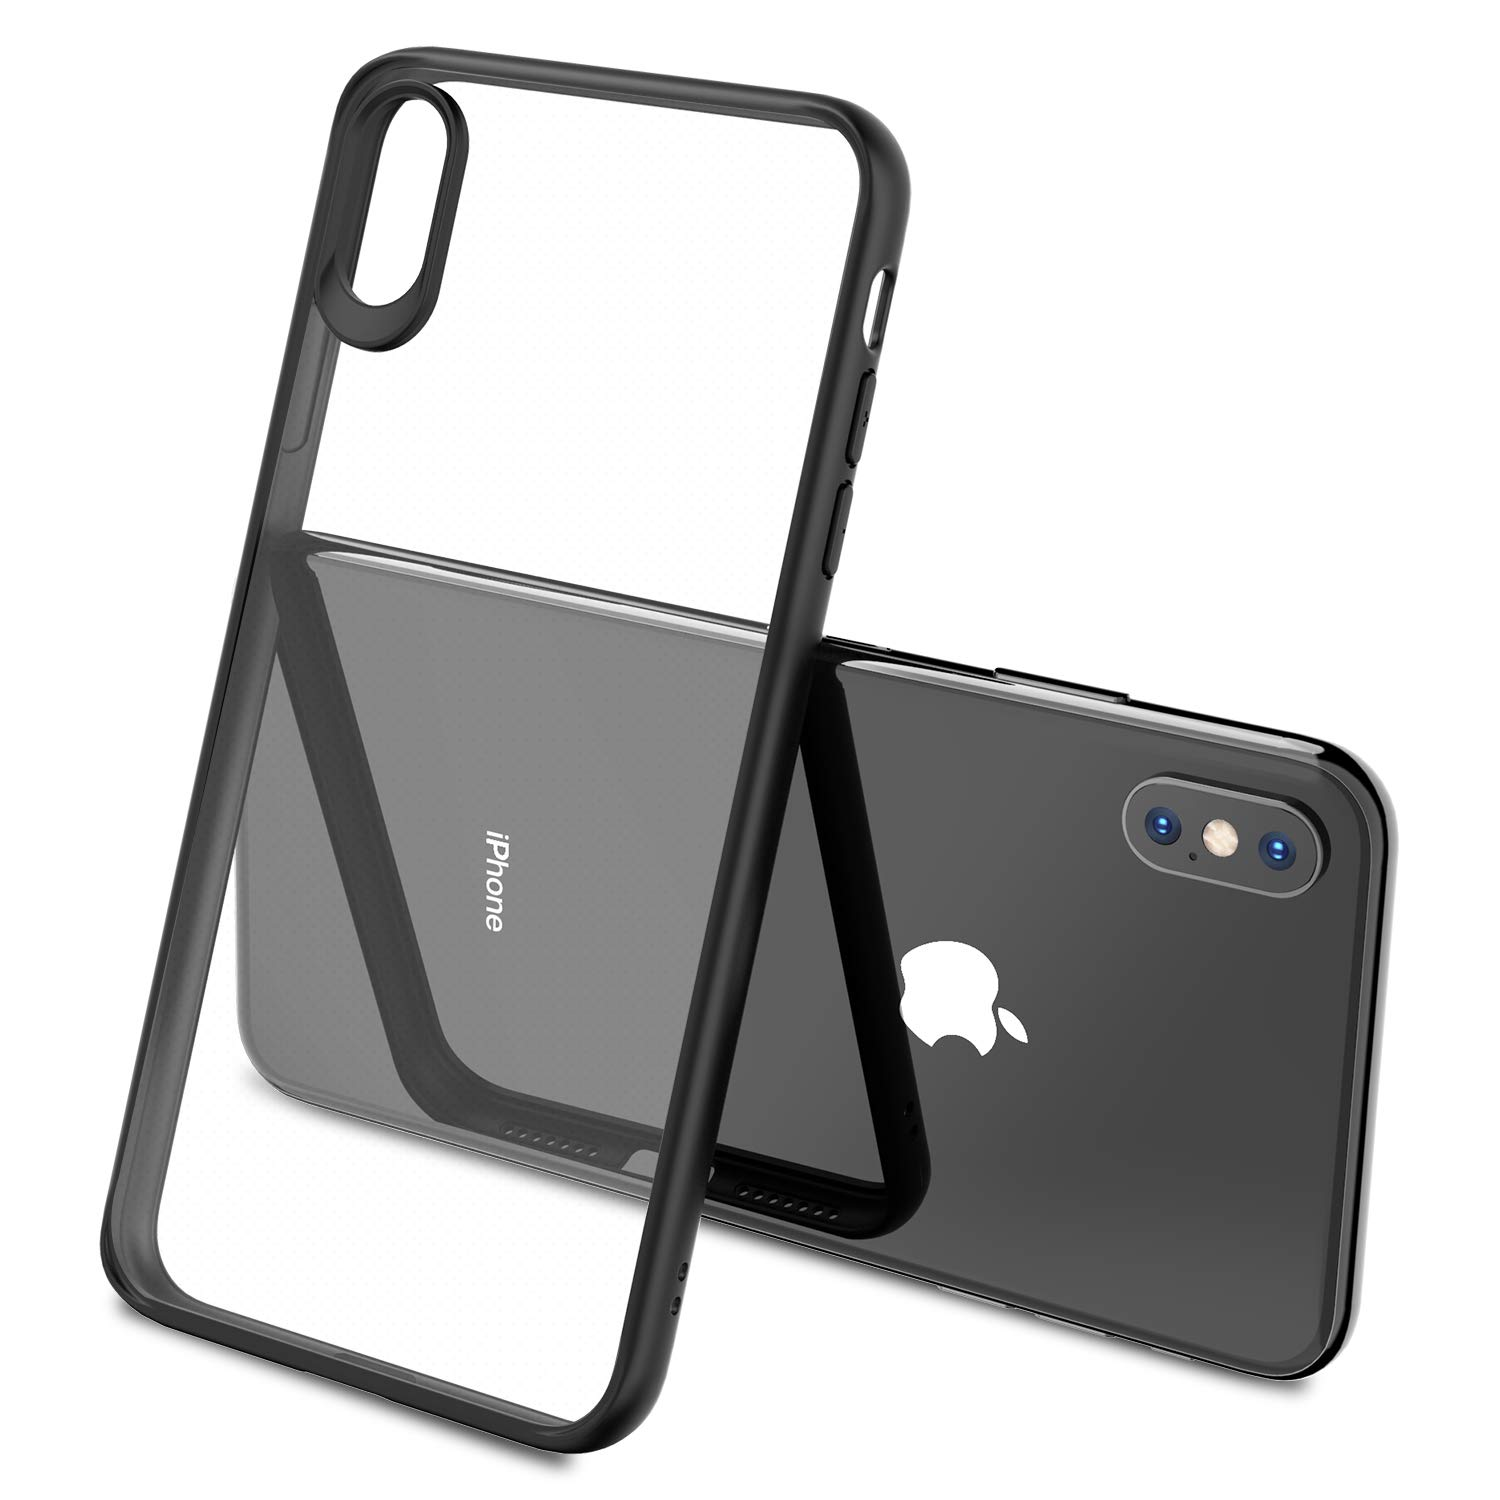 Shock Absorption Cover for iPhone Xs Max with TOZO for iPhone Xs Max Case 6.5 Inch Hybrid Soft Grip Matte Finish Clear Back Panel Ultra-Thin 2018 Slim Thin Fit Black Edge